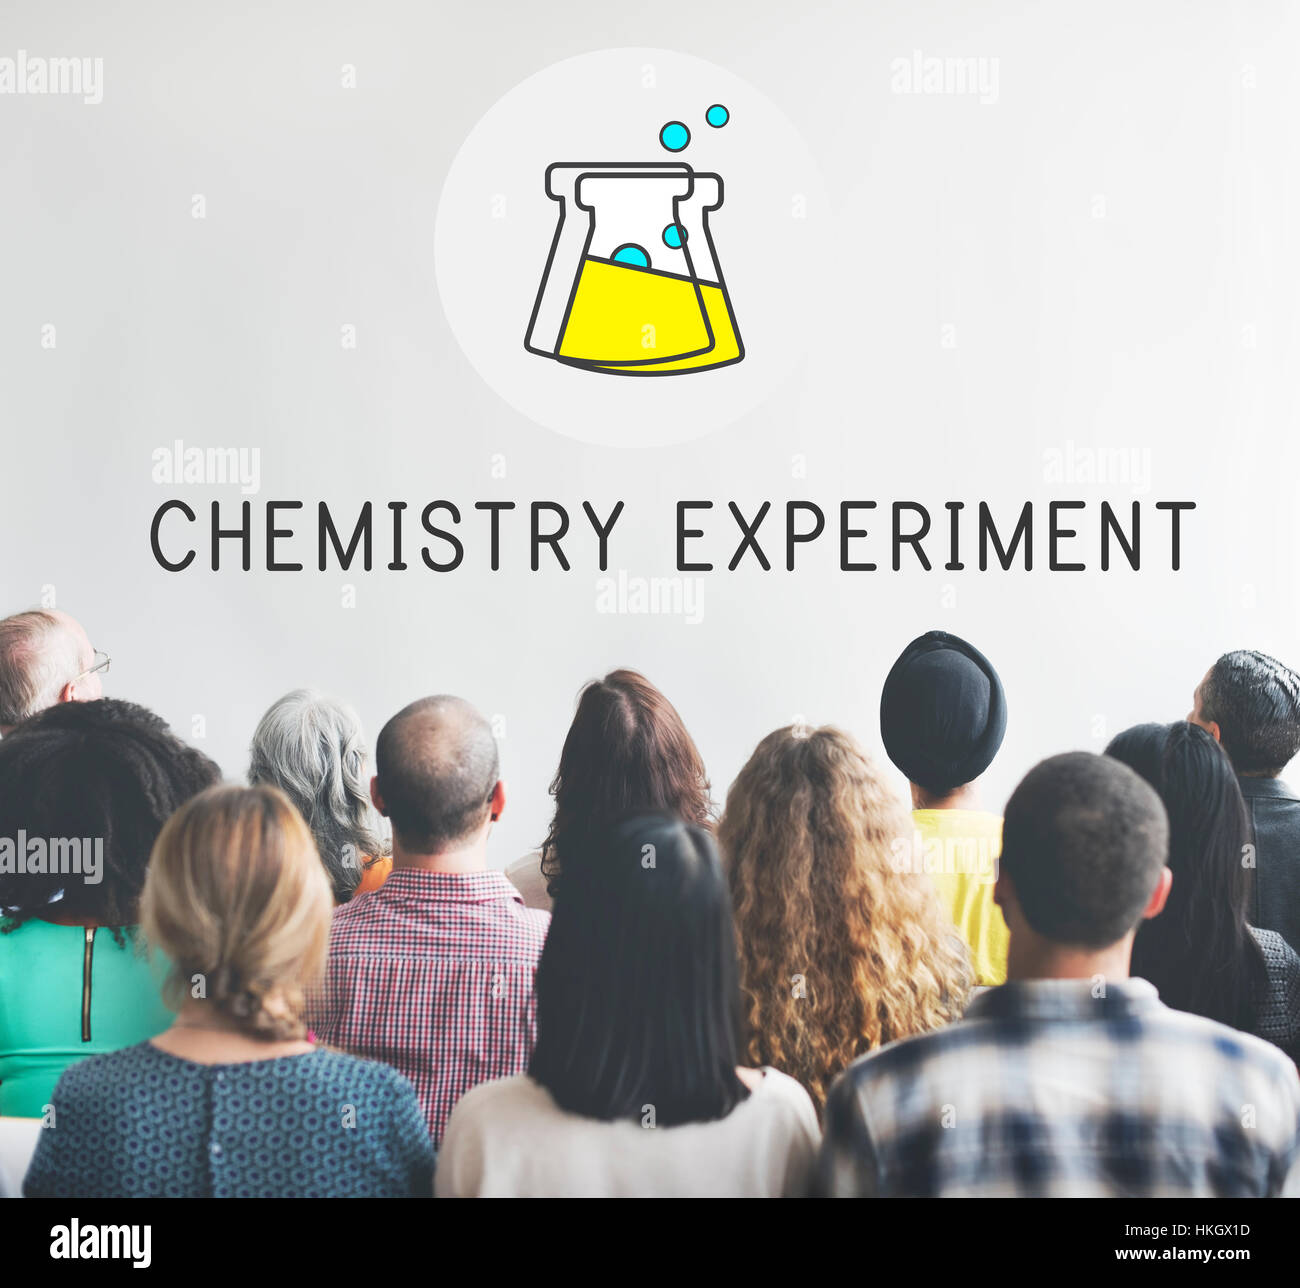 Chemical Education Experiment Formula Concept - Stock Image